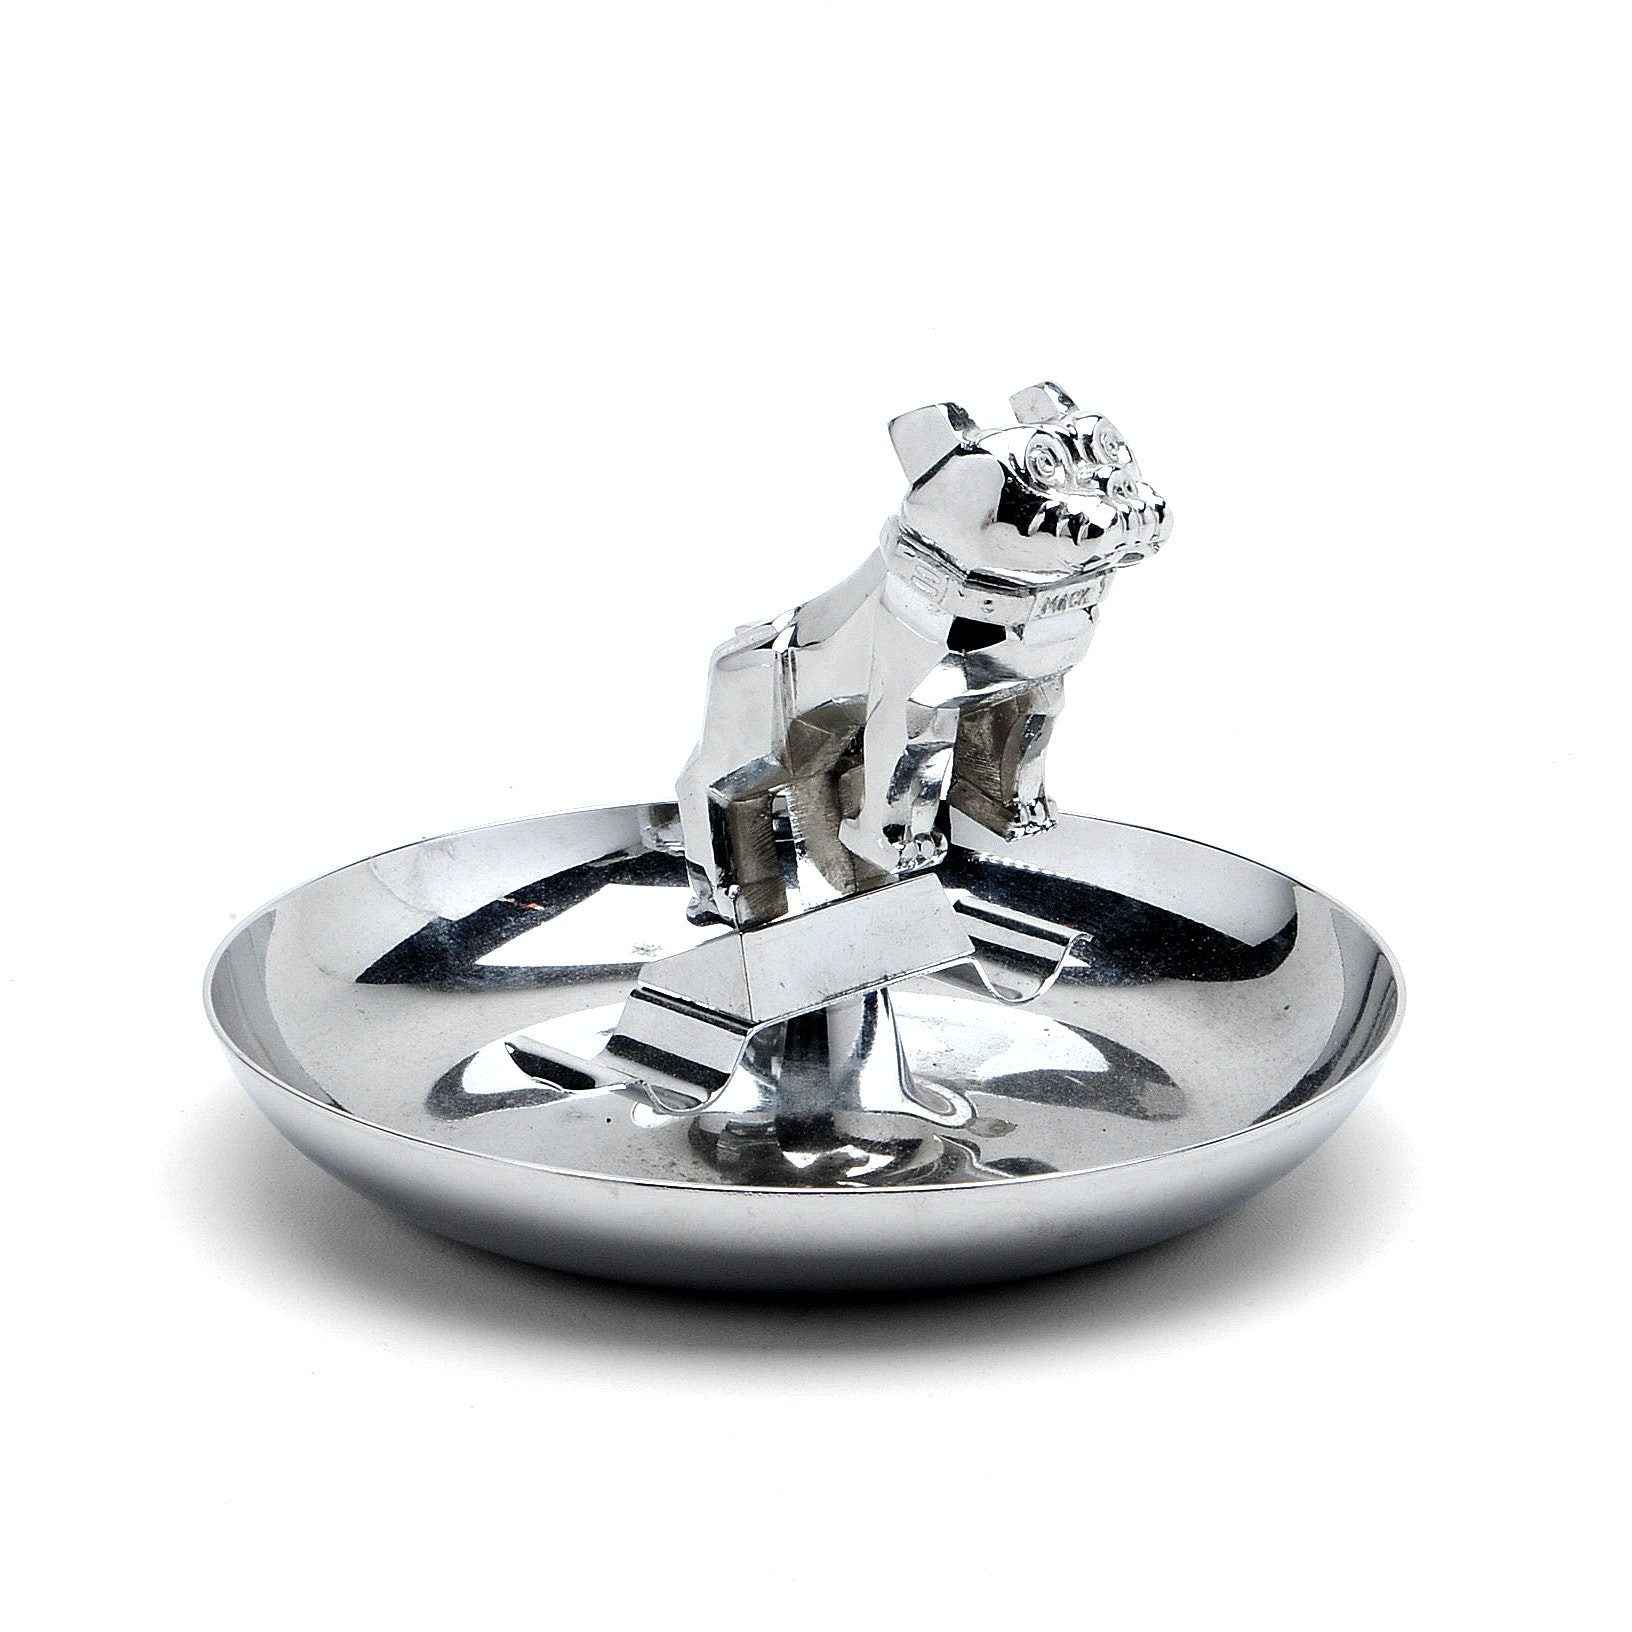 "1950s Mack Truck ""Bull Dog"" Chrome Ashtray"